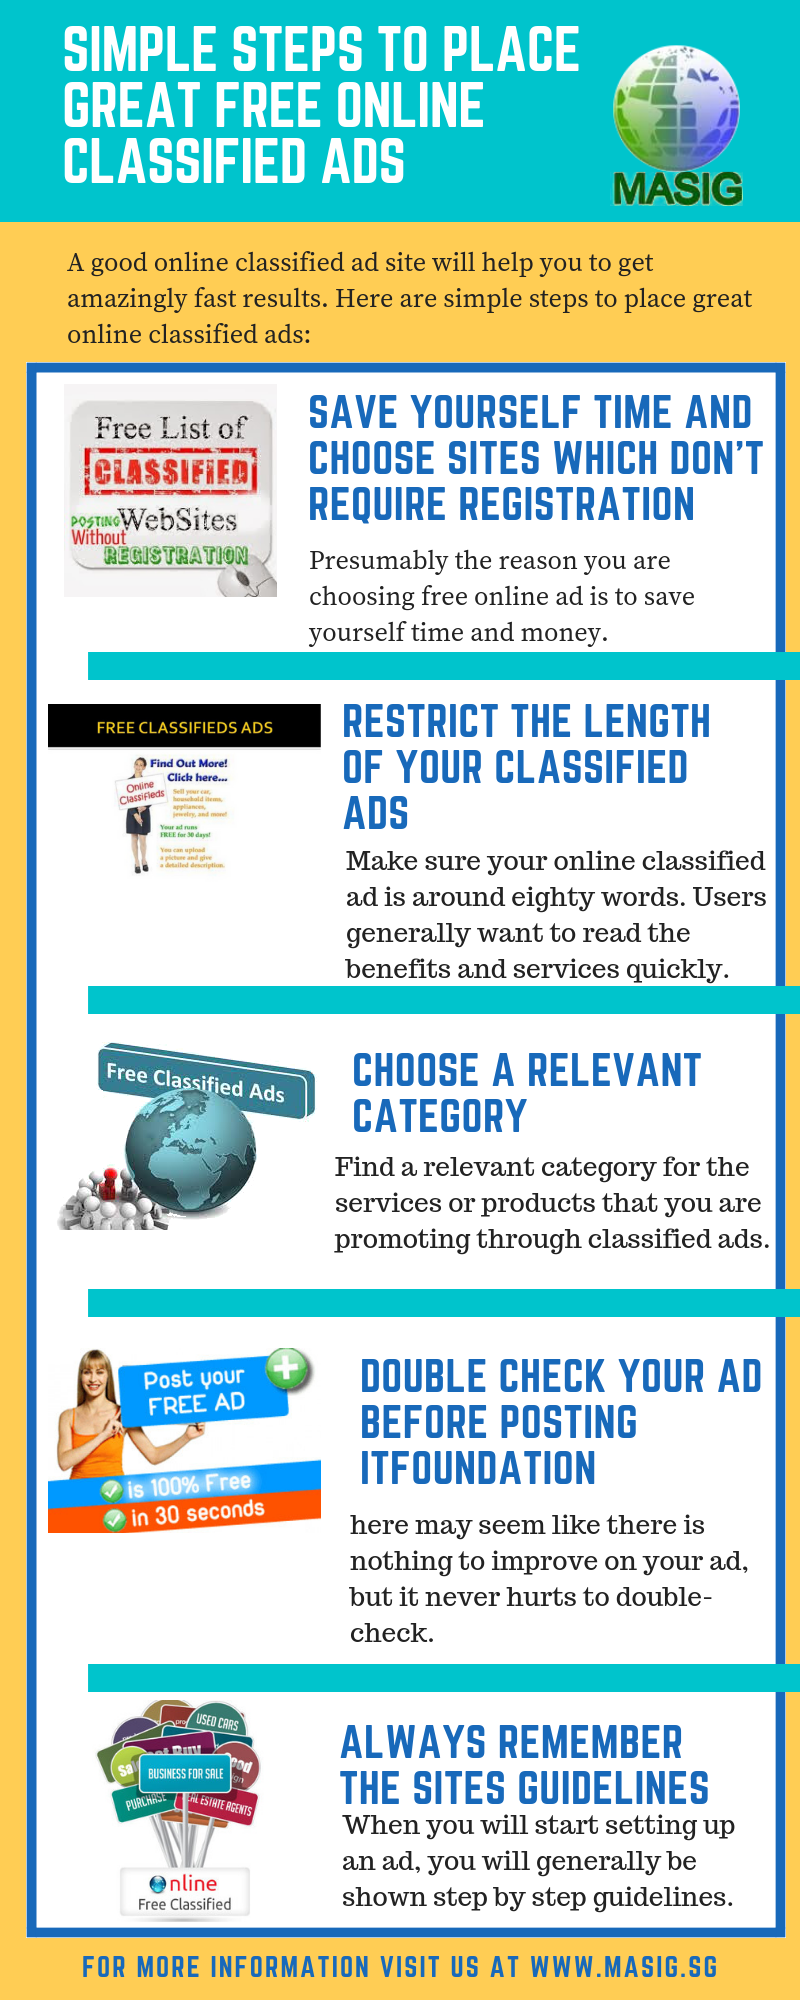 Best places to post free ads